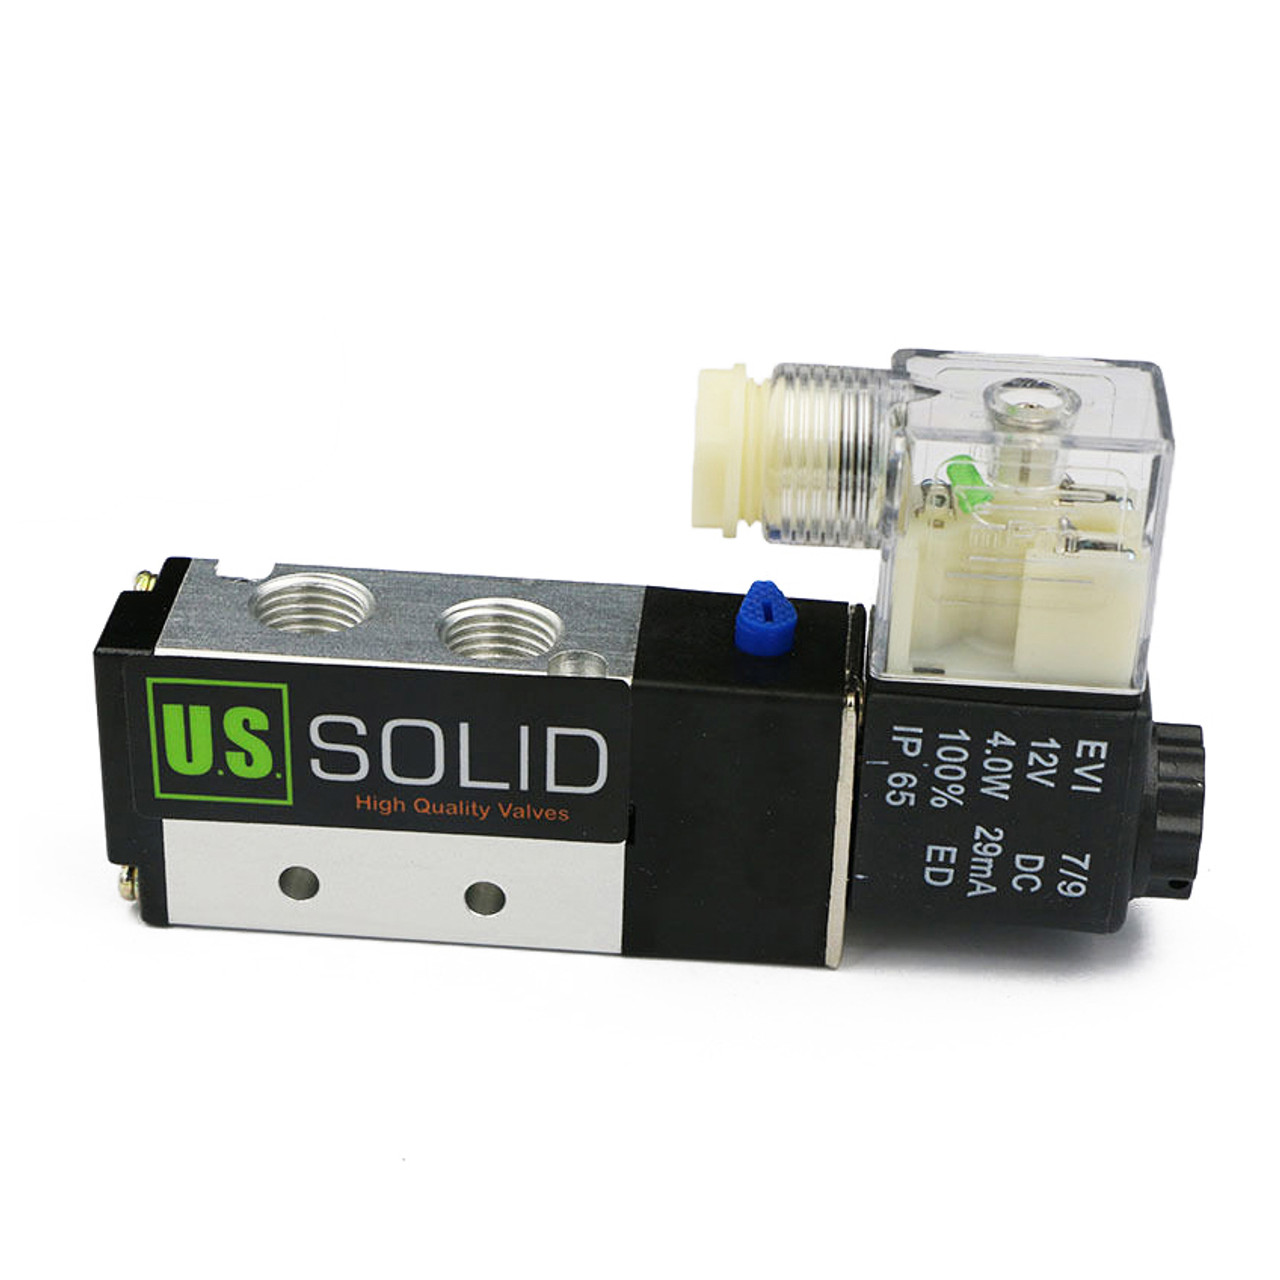 "U.S. Solid 1/4"" 5 way 2 Position Pneumatic Electric Solenoid Valve DC 12 V"